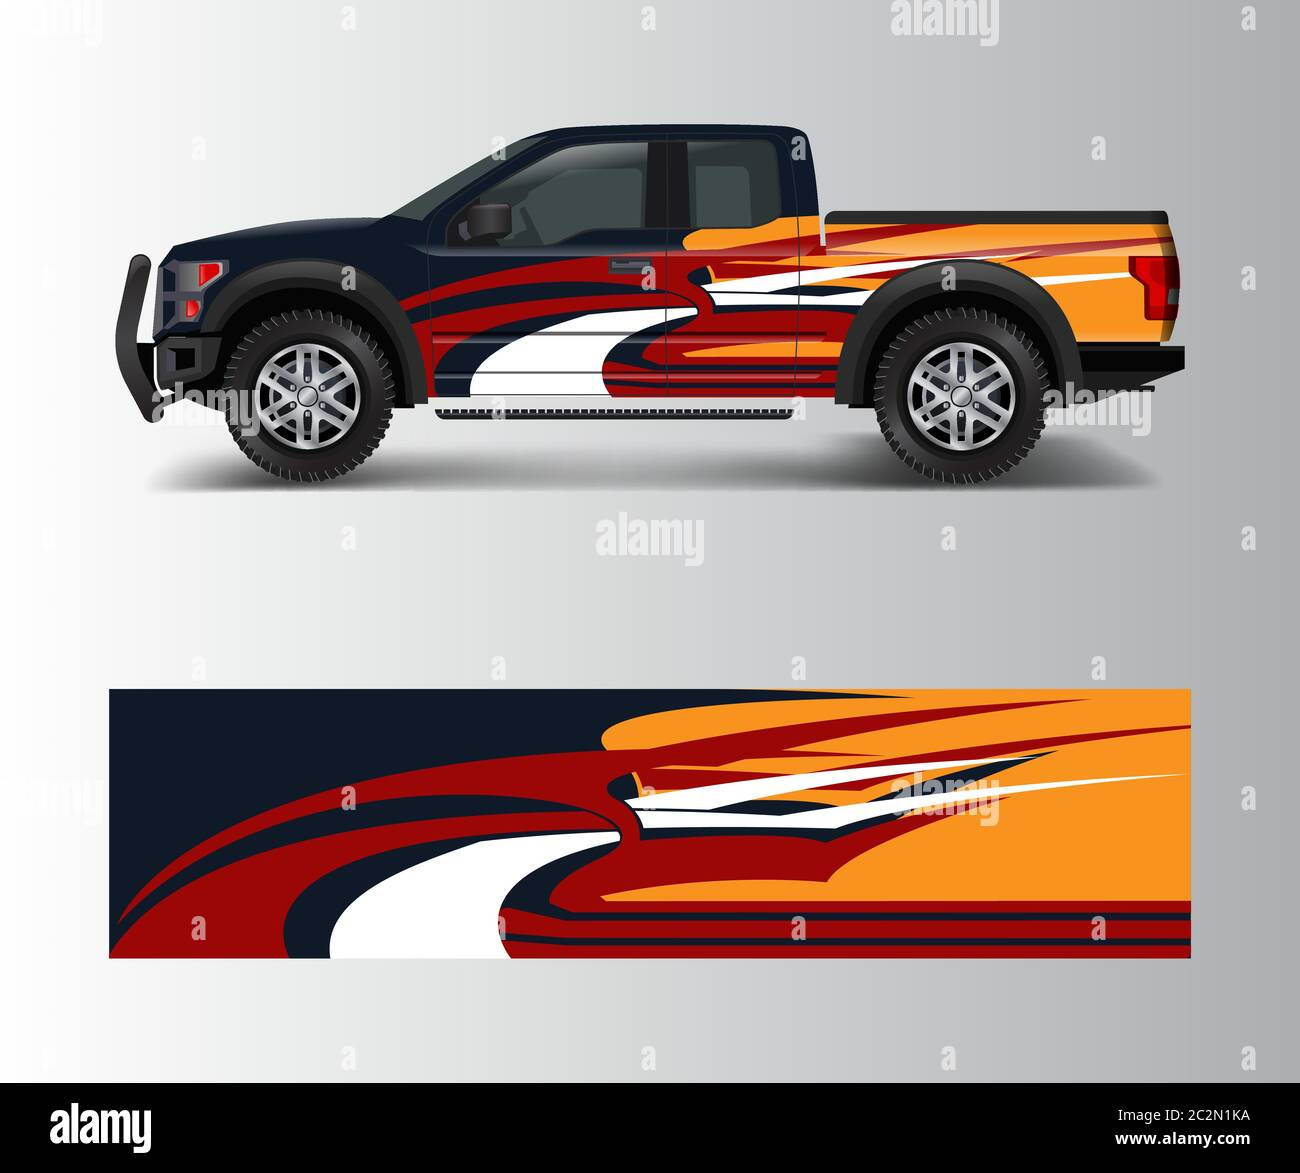 Abstract Modern Graphic Design For Truck And Vehicle Wrap And Branding Stickers Stock Vector Image Art Alamy,Upper Arm Best Small Tattoo Designs For Arms